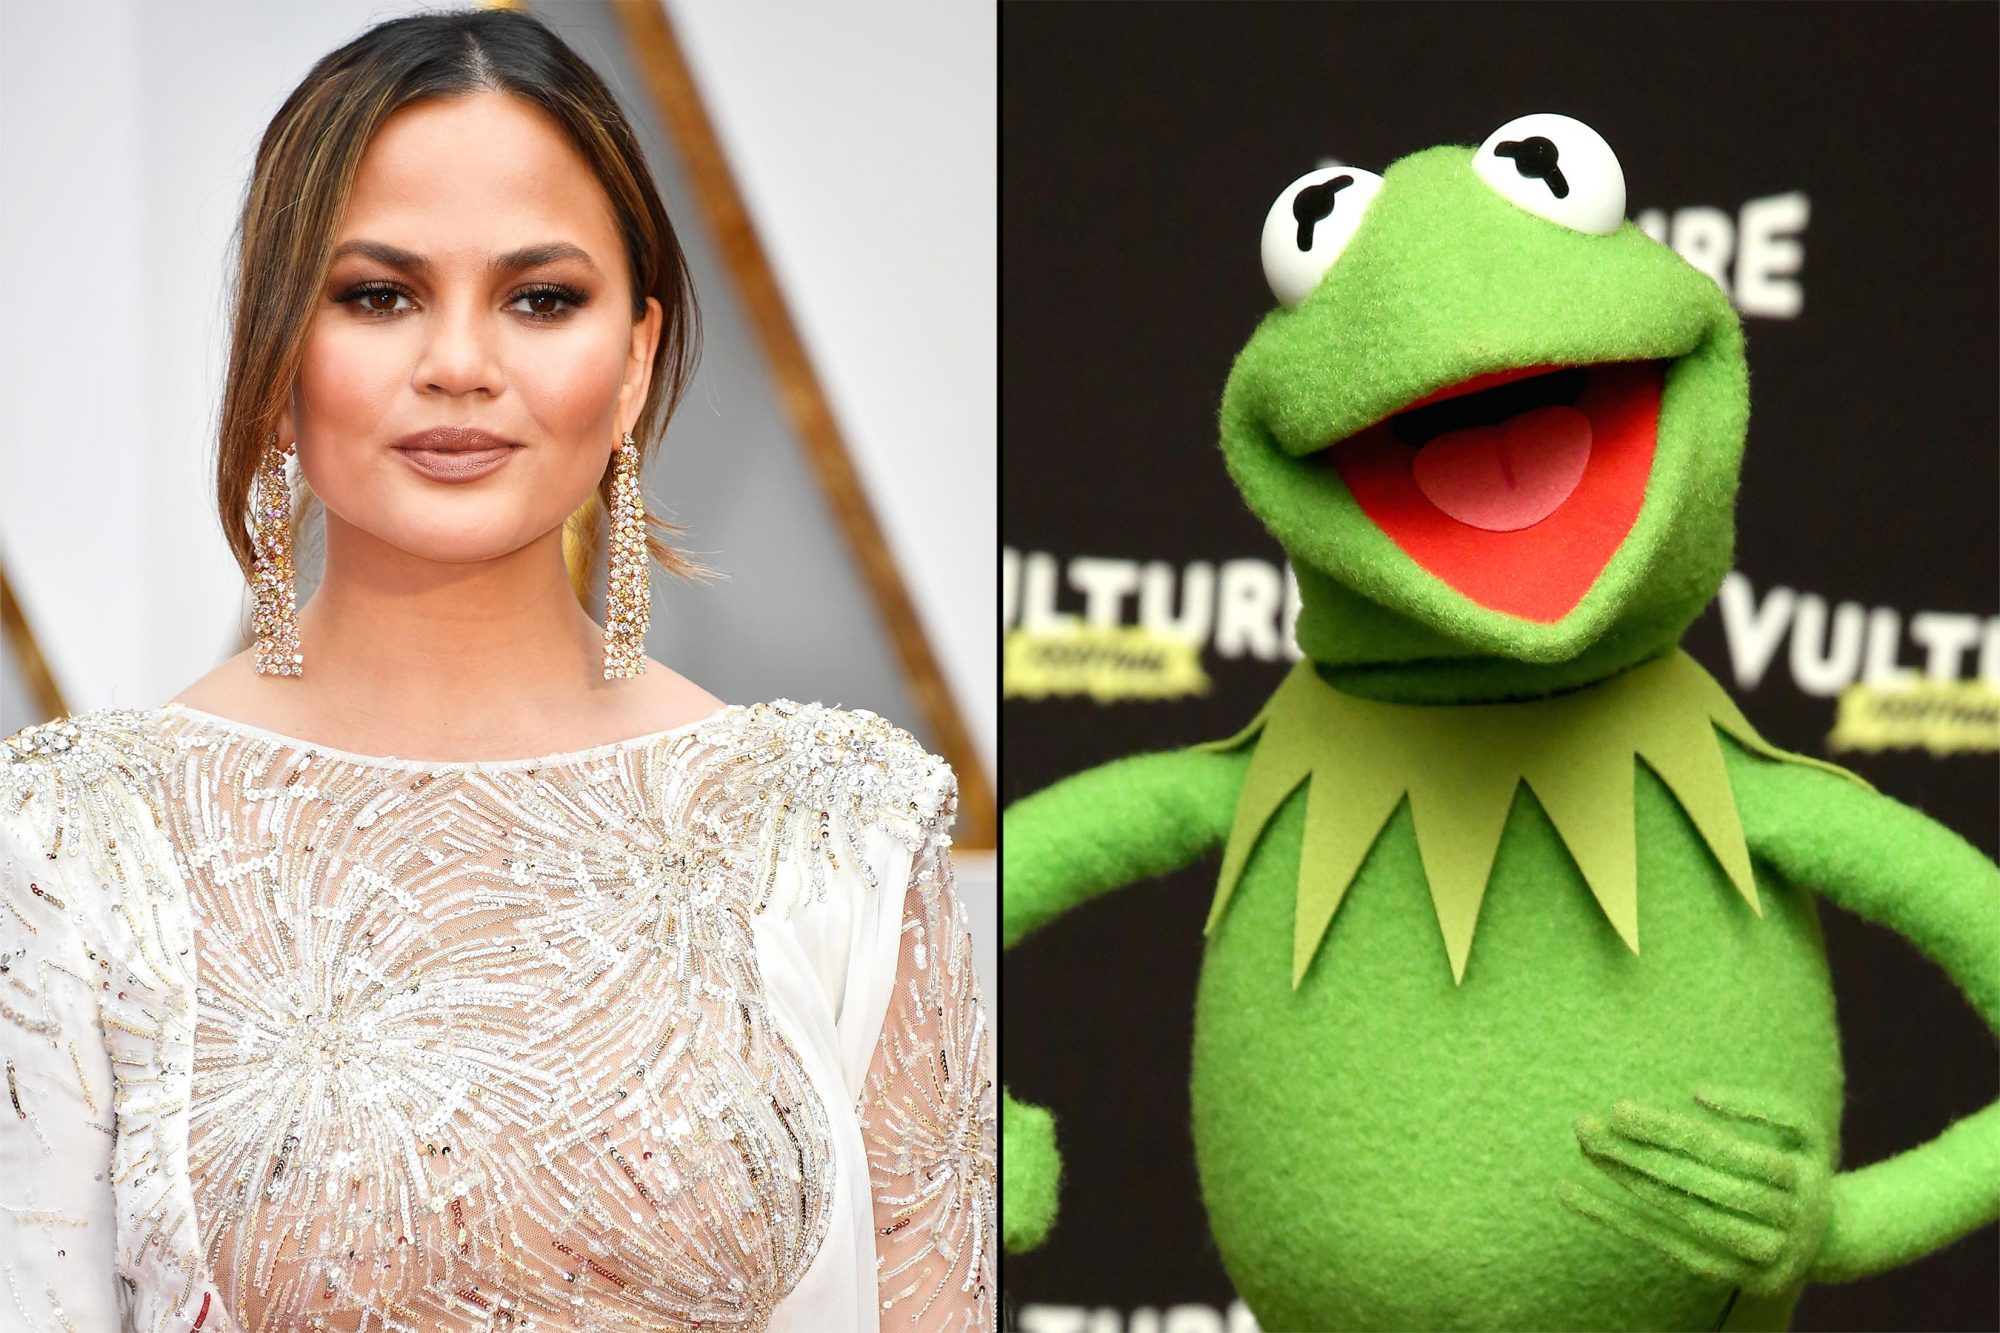 CHRISSY-TEIGEN-KERMIT-THE-FROG